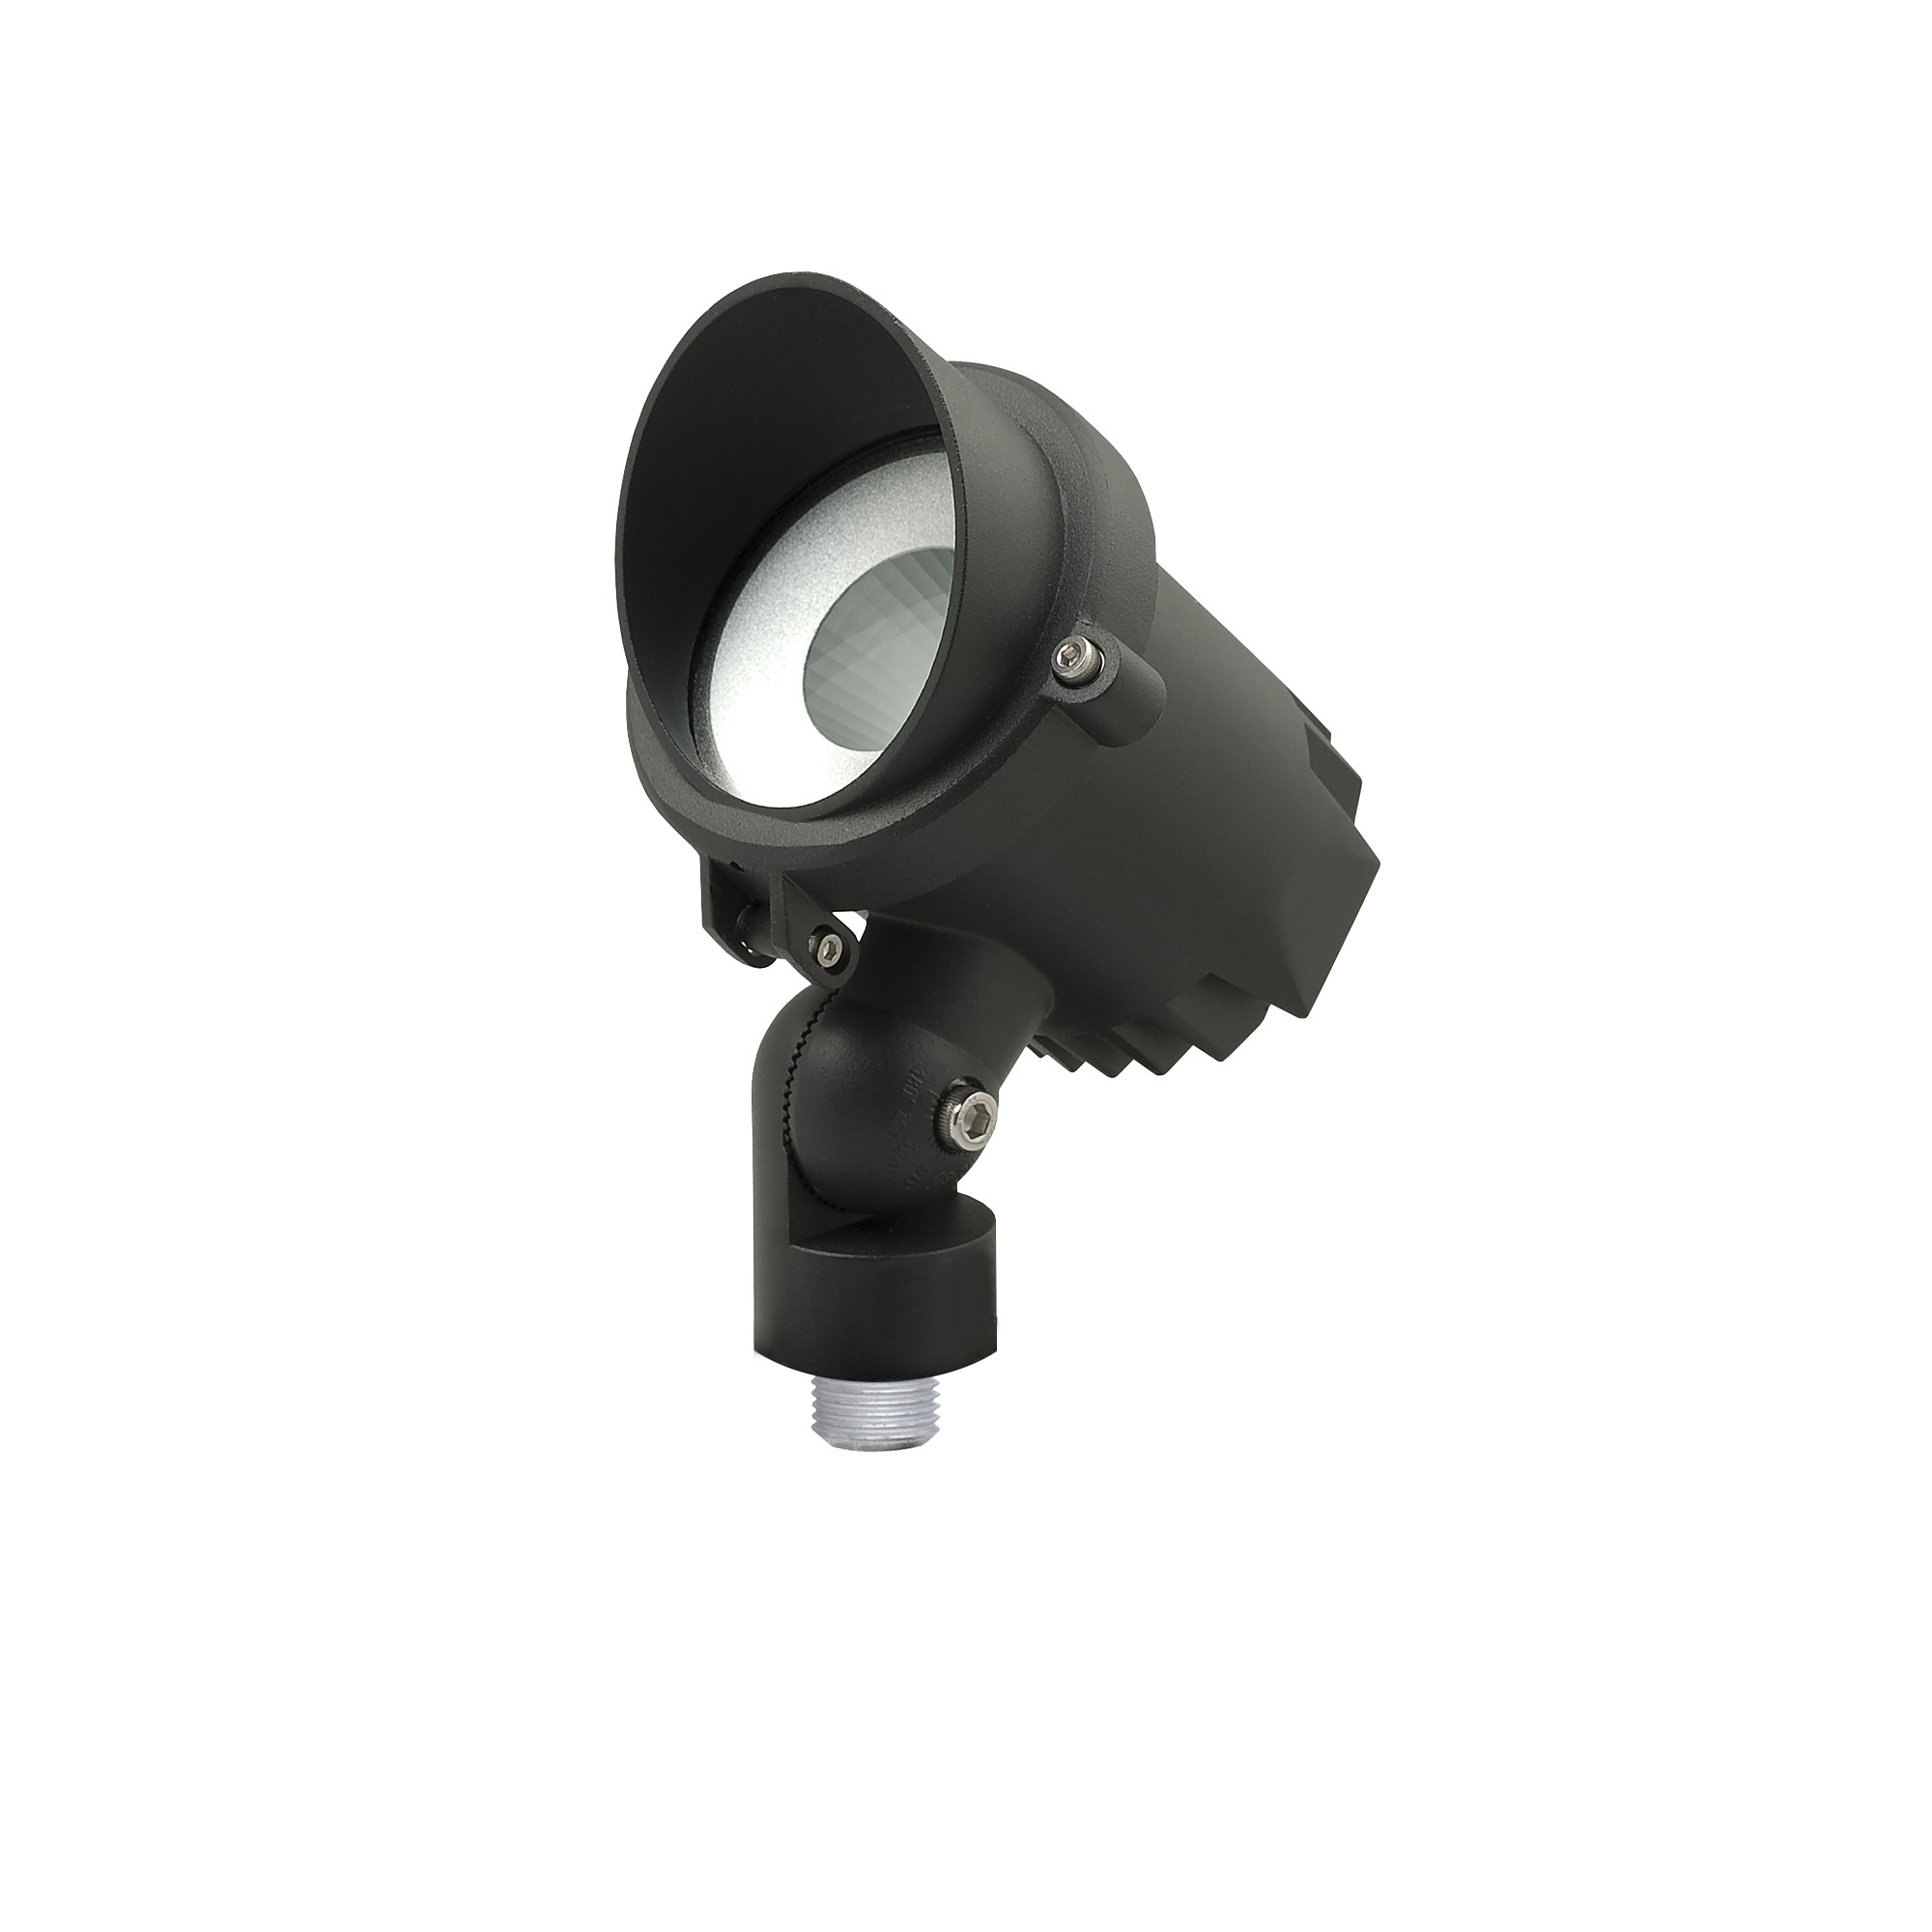 "4"" 1,000LM/1,500LM FLOOD LIGHT (IP65) KNUCKLE MOUNT"